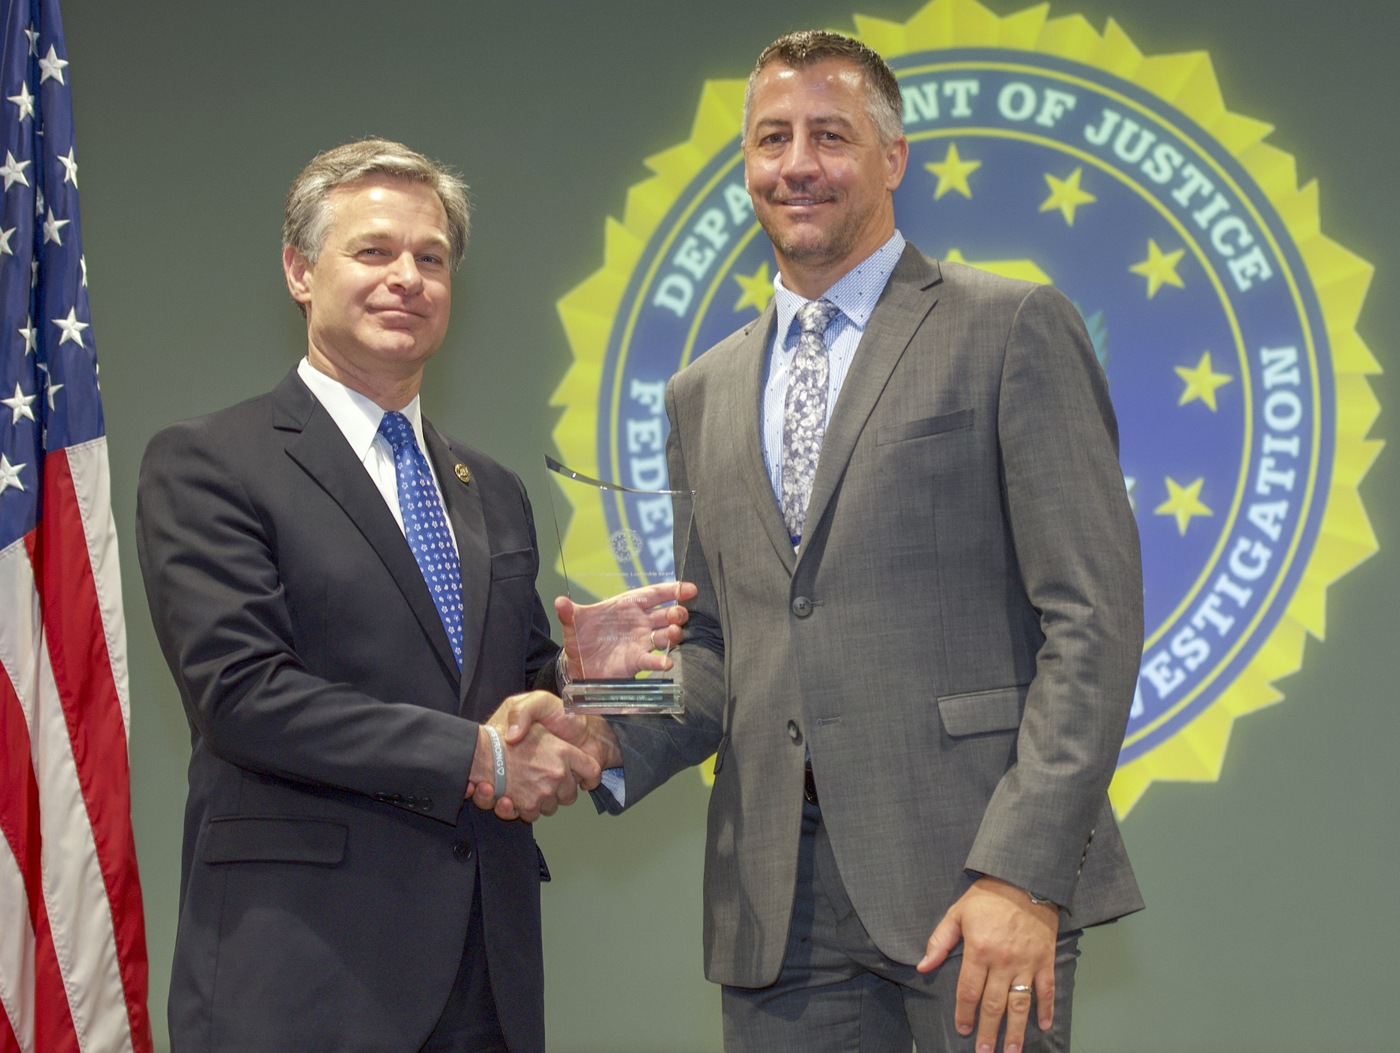 FBI Director Christopher Wray presents Phoenix Division recipient David Gillum with the Director's Community Leadership Award (DCLA) at a ceremony at FBI Headquarters on May 3, 2019.